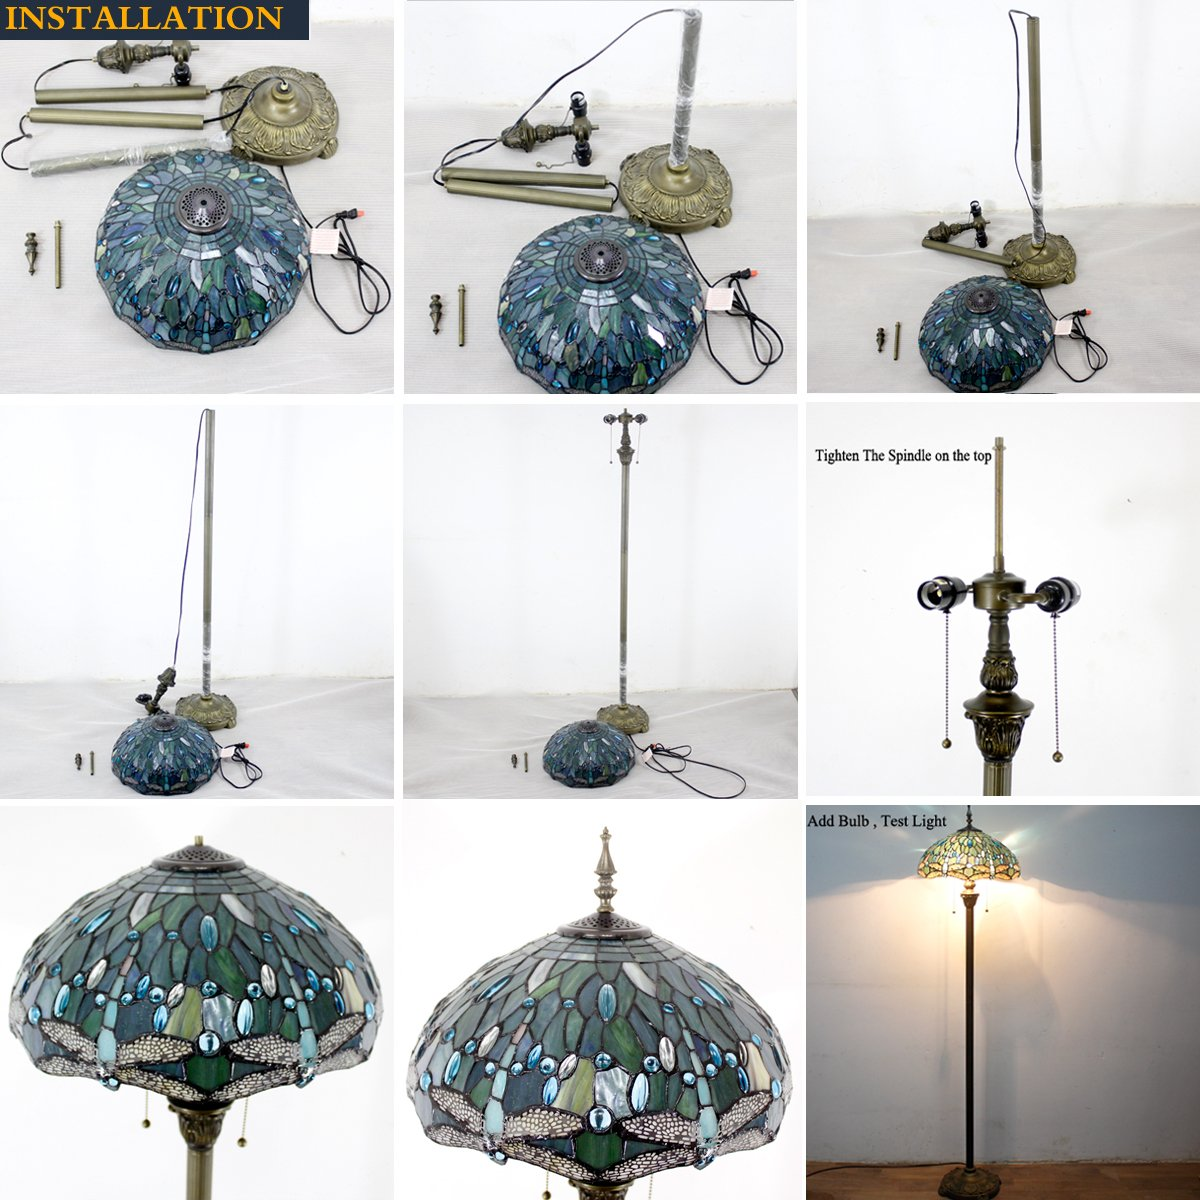 Tiffany Style Floor Standing Lamp 64 Inch Tall Sea Blue Stained Glass Shade Crystal Bead Dragonfly 2 Light Antique Base for Bedroom Living Room Reading Lighting Table Set S147 WERFACTORY